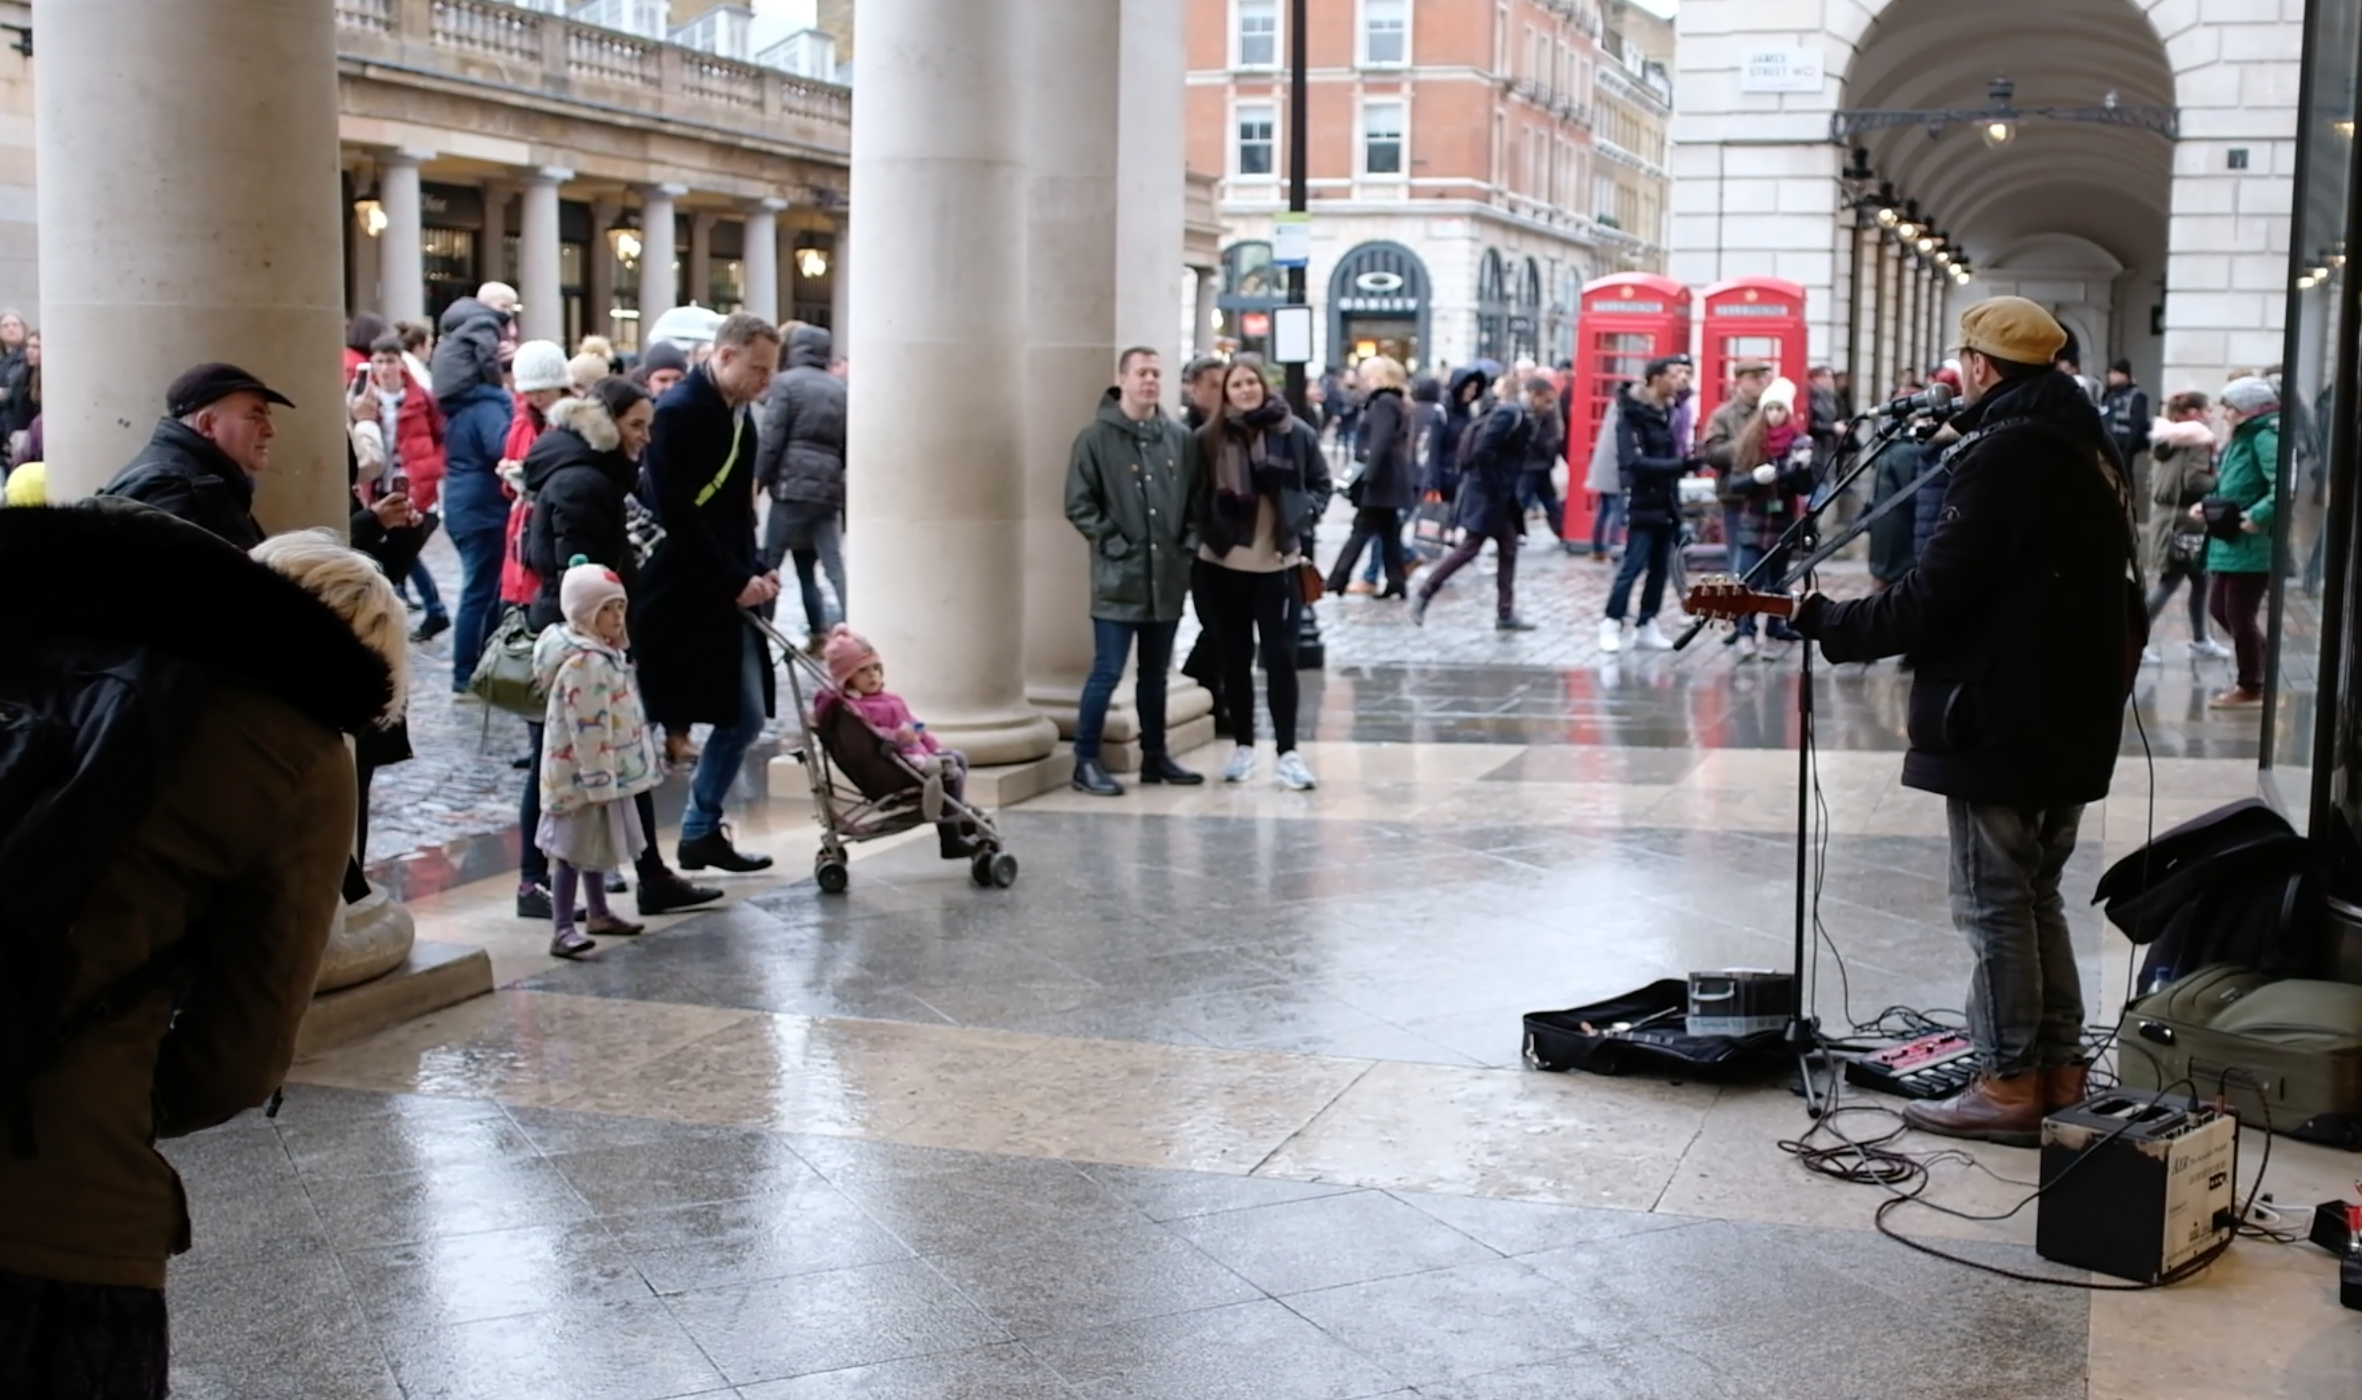 Covent Garden's private area starts right after the big columns that the audience of this performer is standing against. Any musical equipment requiring electricity is not permitted to be included in the performance inside Covent Garden.